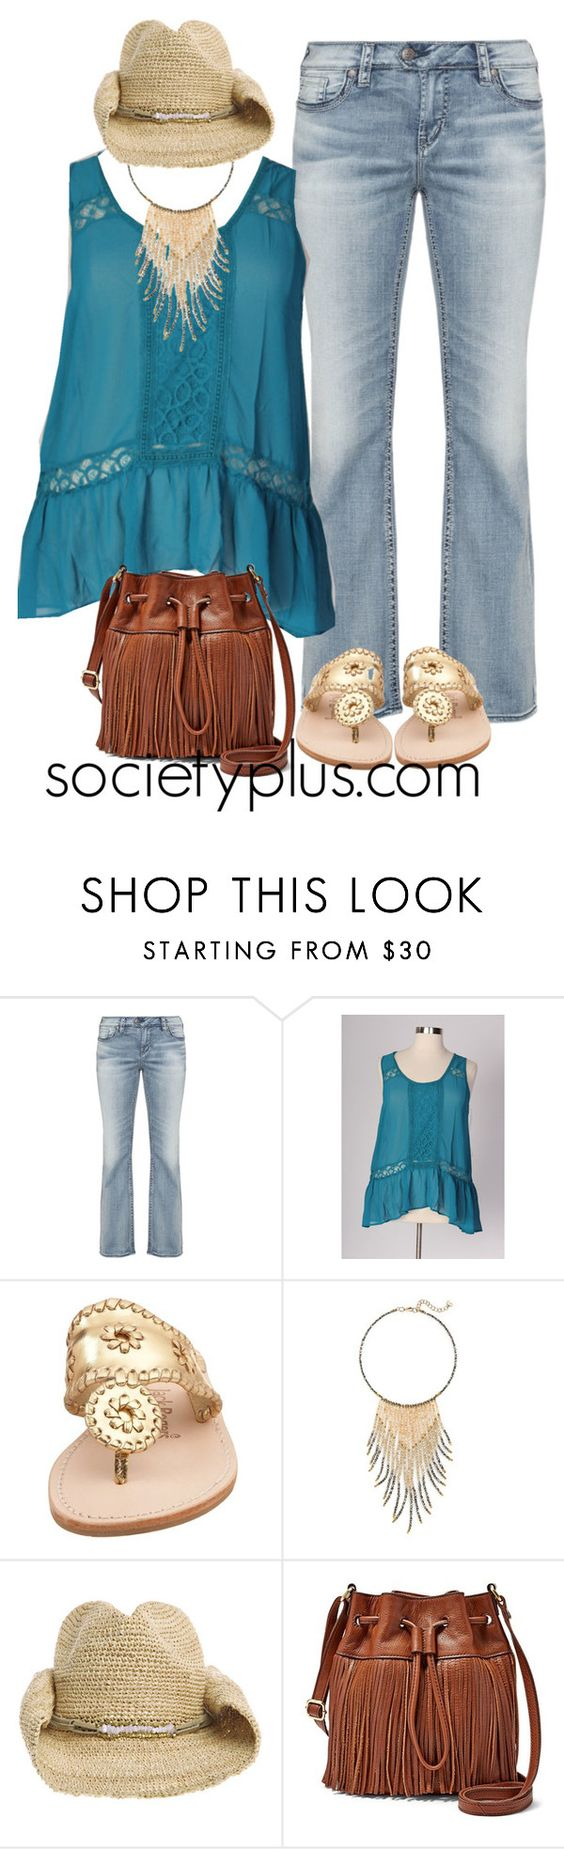 """""""Plus Size Boho Top - Alexa Webb for Society+"""" by iamsocietyplus on Polyvore featuring Jack Rogers, Nakamol Design, Flora Bella, FOSSIL, women's clothing, women, female, woman, misses and juniors"""